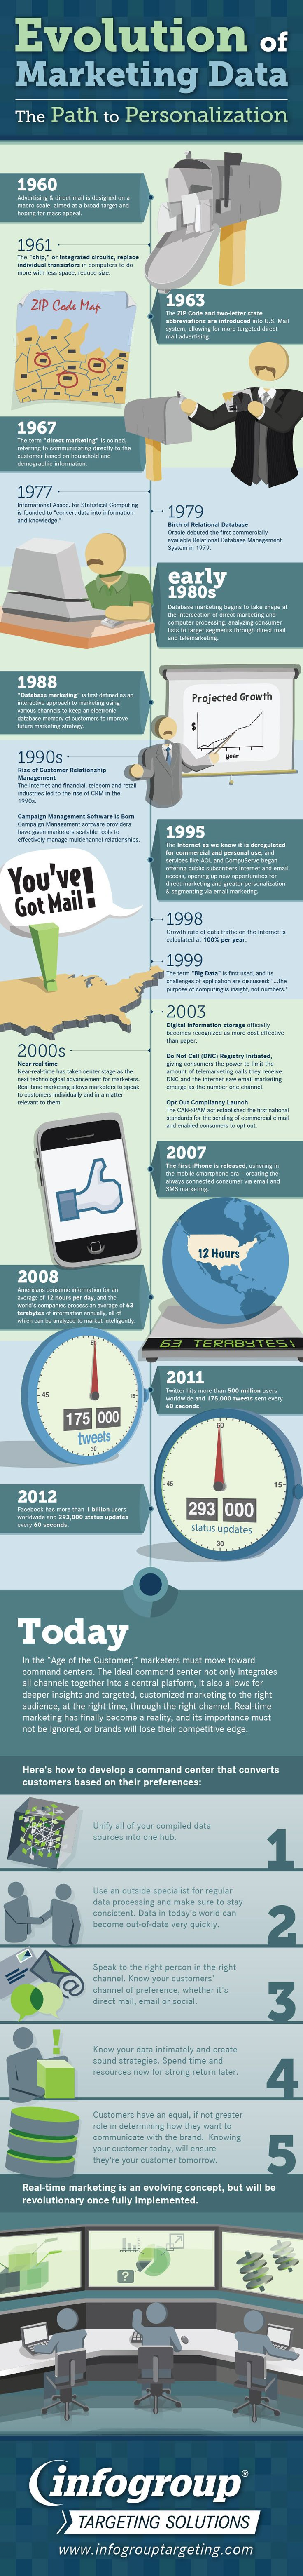 The Evolution Of Marketing Data – From Direct Mail To Twitter (1960-2012) [INFOGRAPHIC]